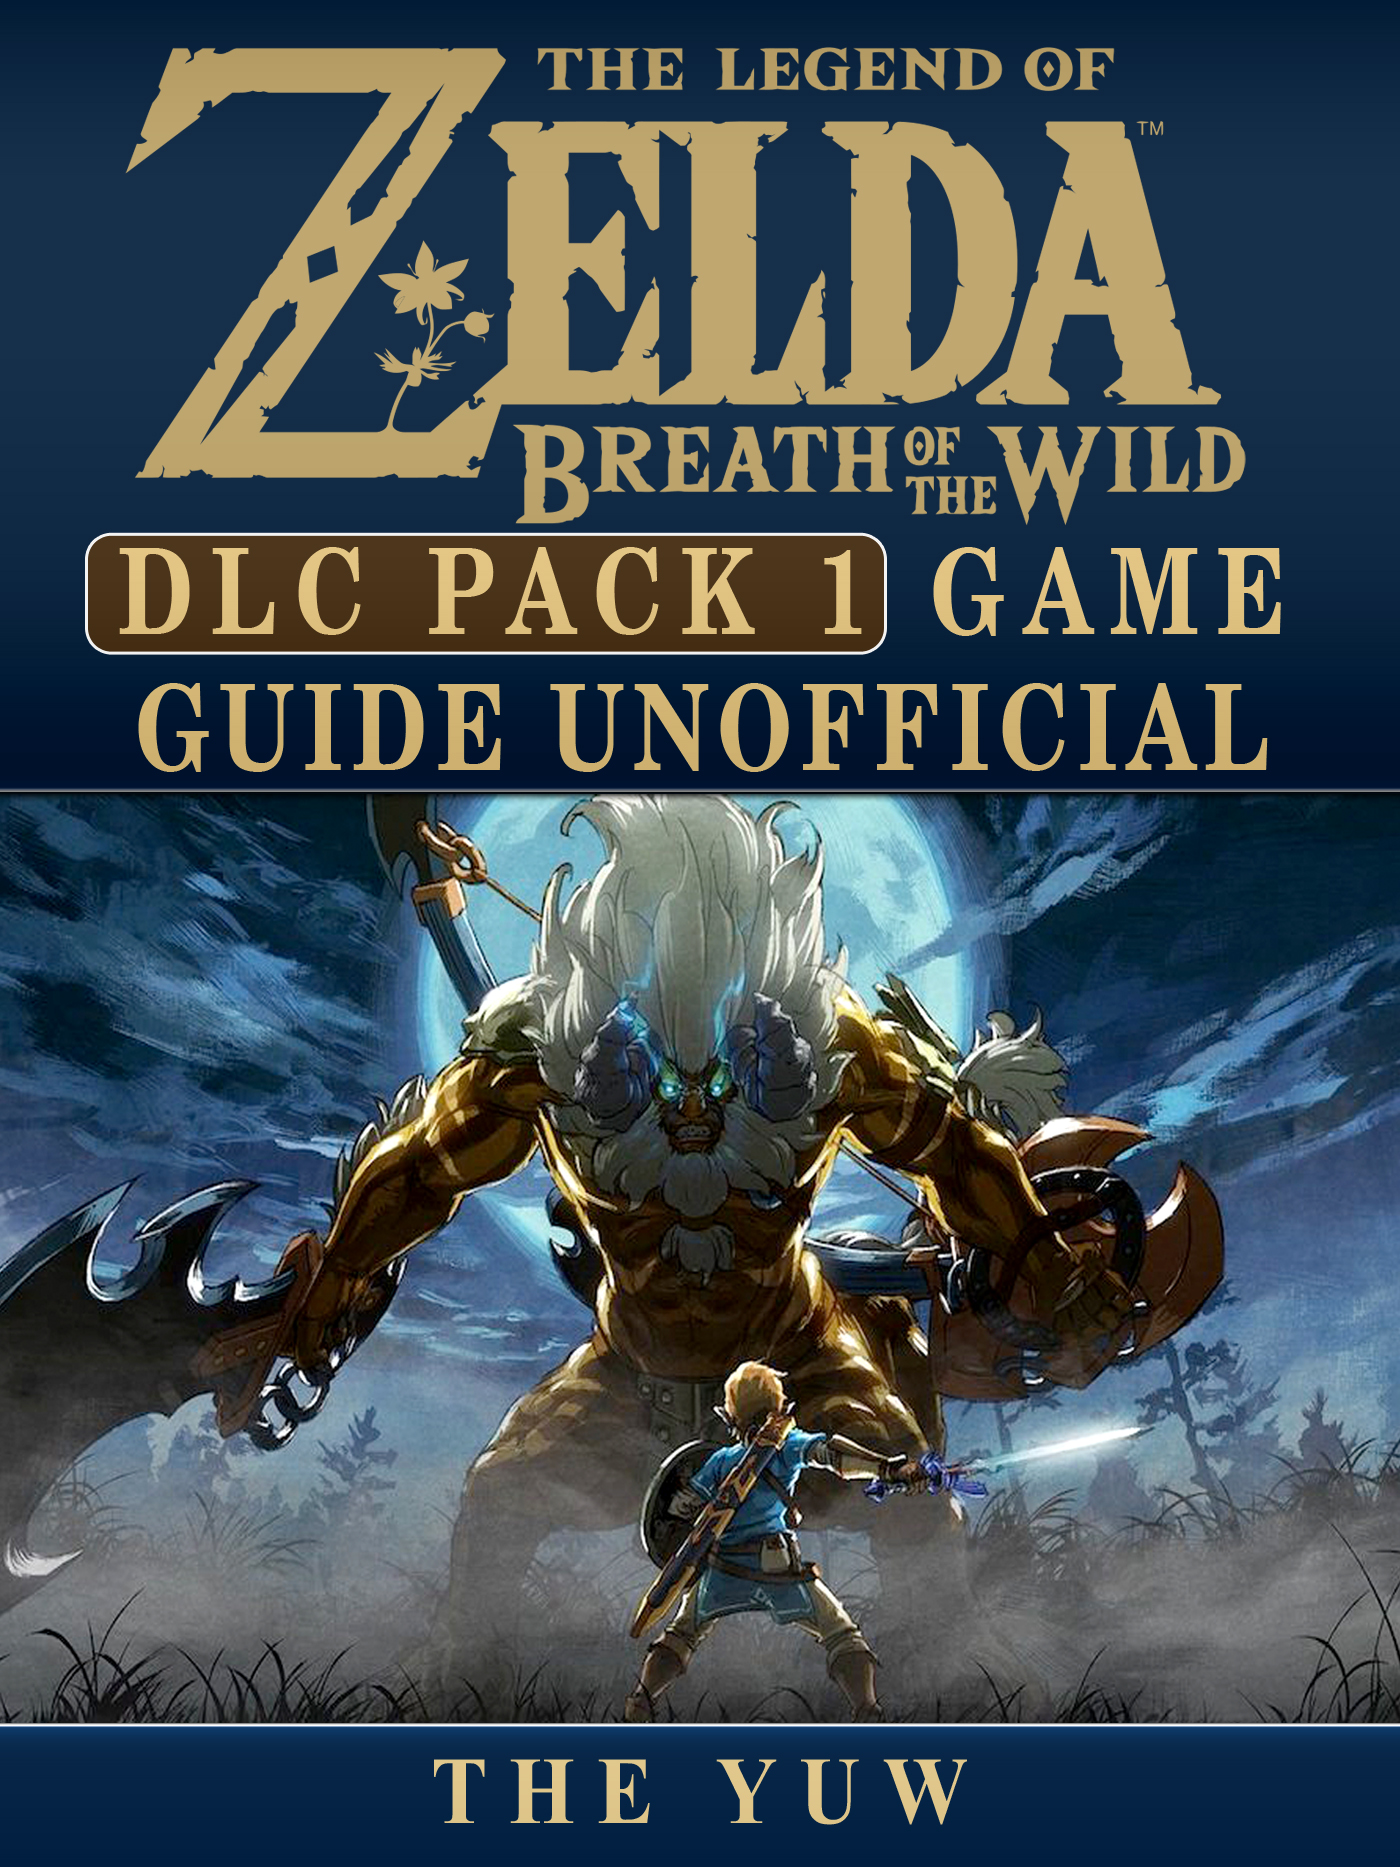 Legend of Zelda Breath of the Wild DLC Pack 1 Game Guide Unofficial By The Yuw